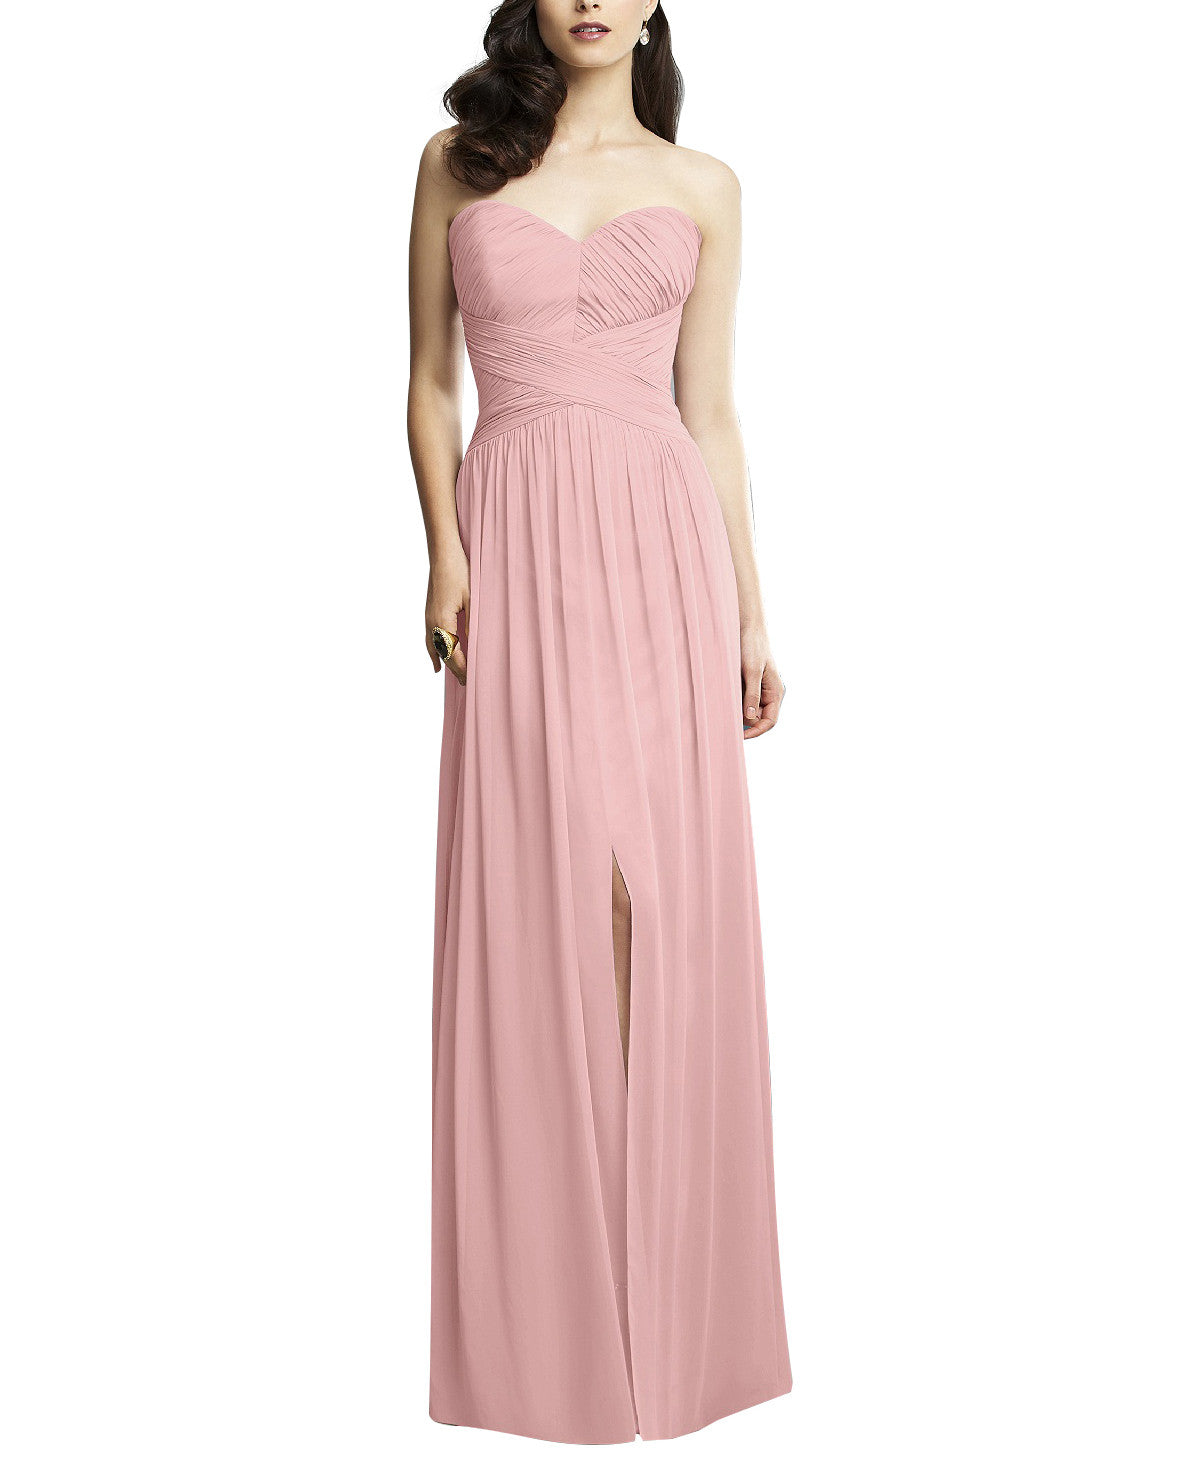 Dessy collection style 2931 bridesmaid dress brideside dessy collection style 2931 ombrellifo Images